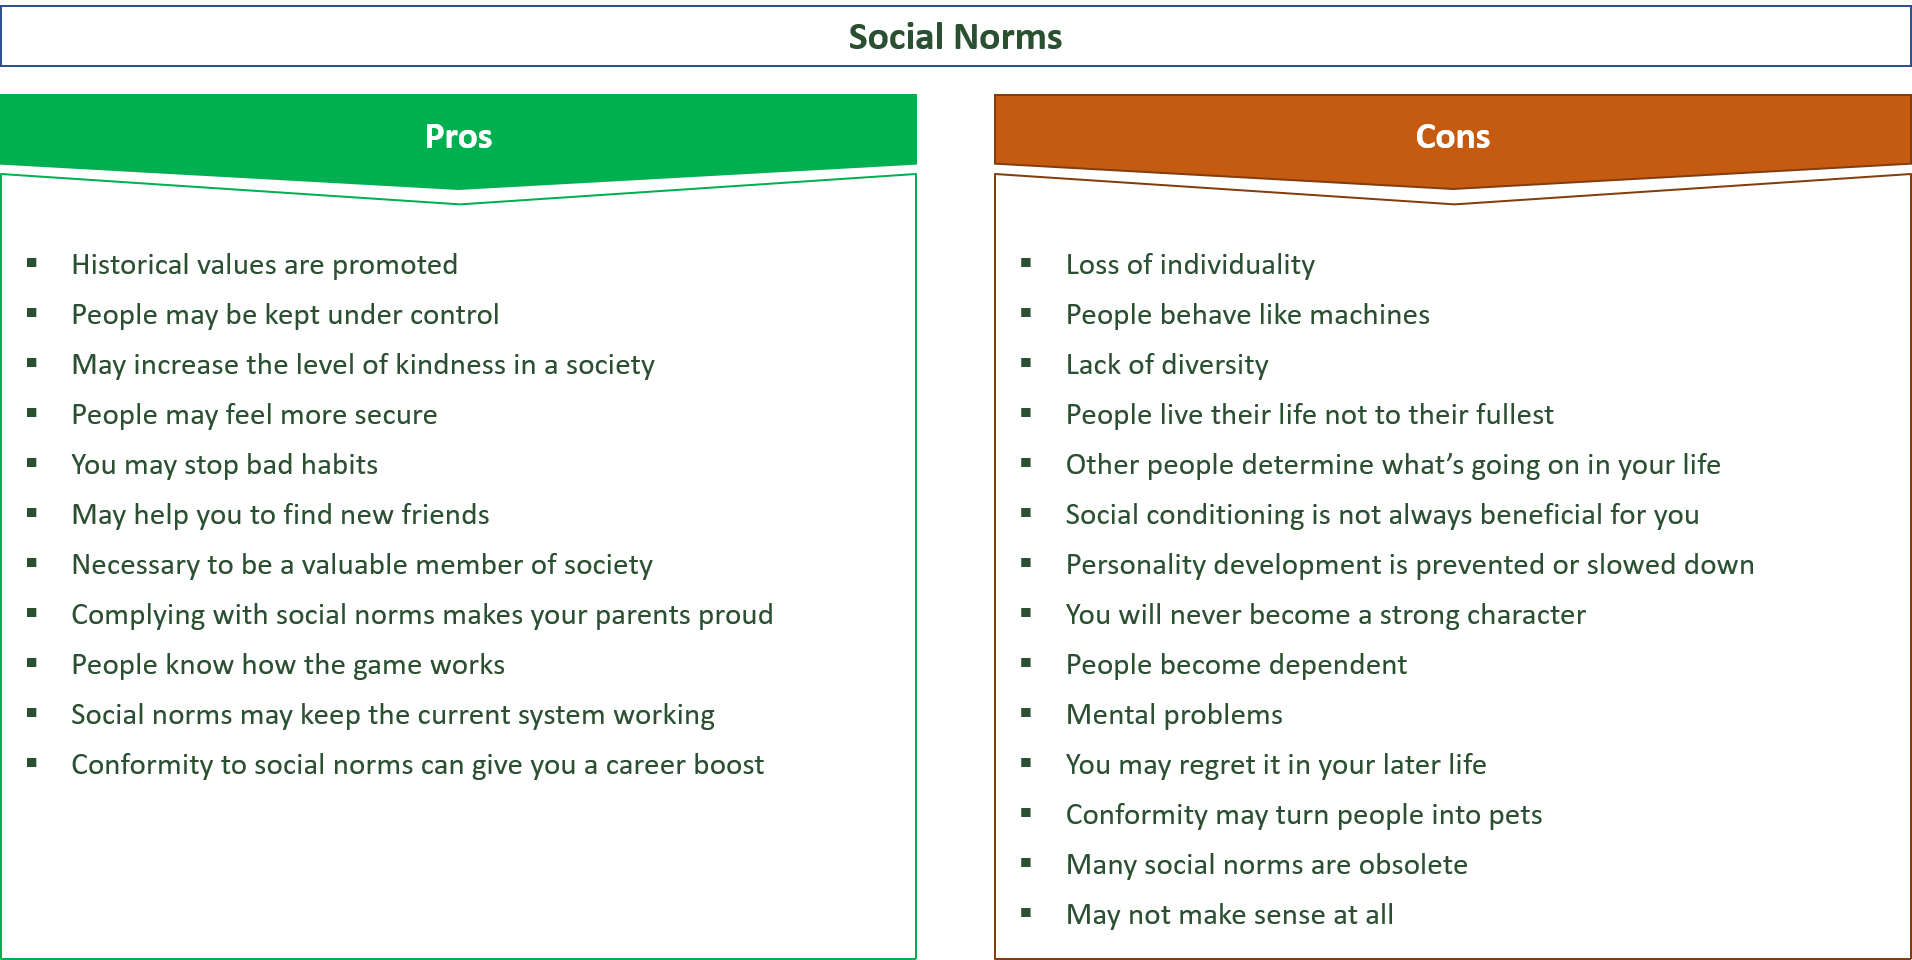 advantages and disadvantages of social norms